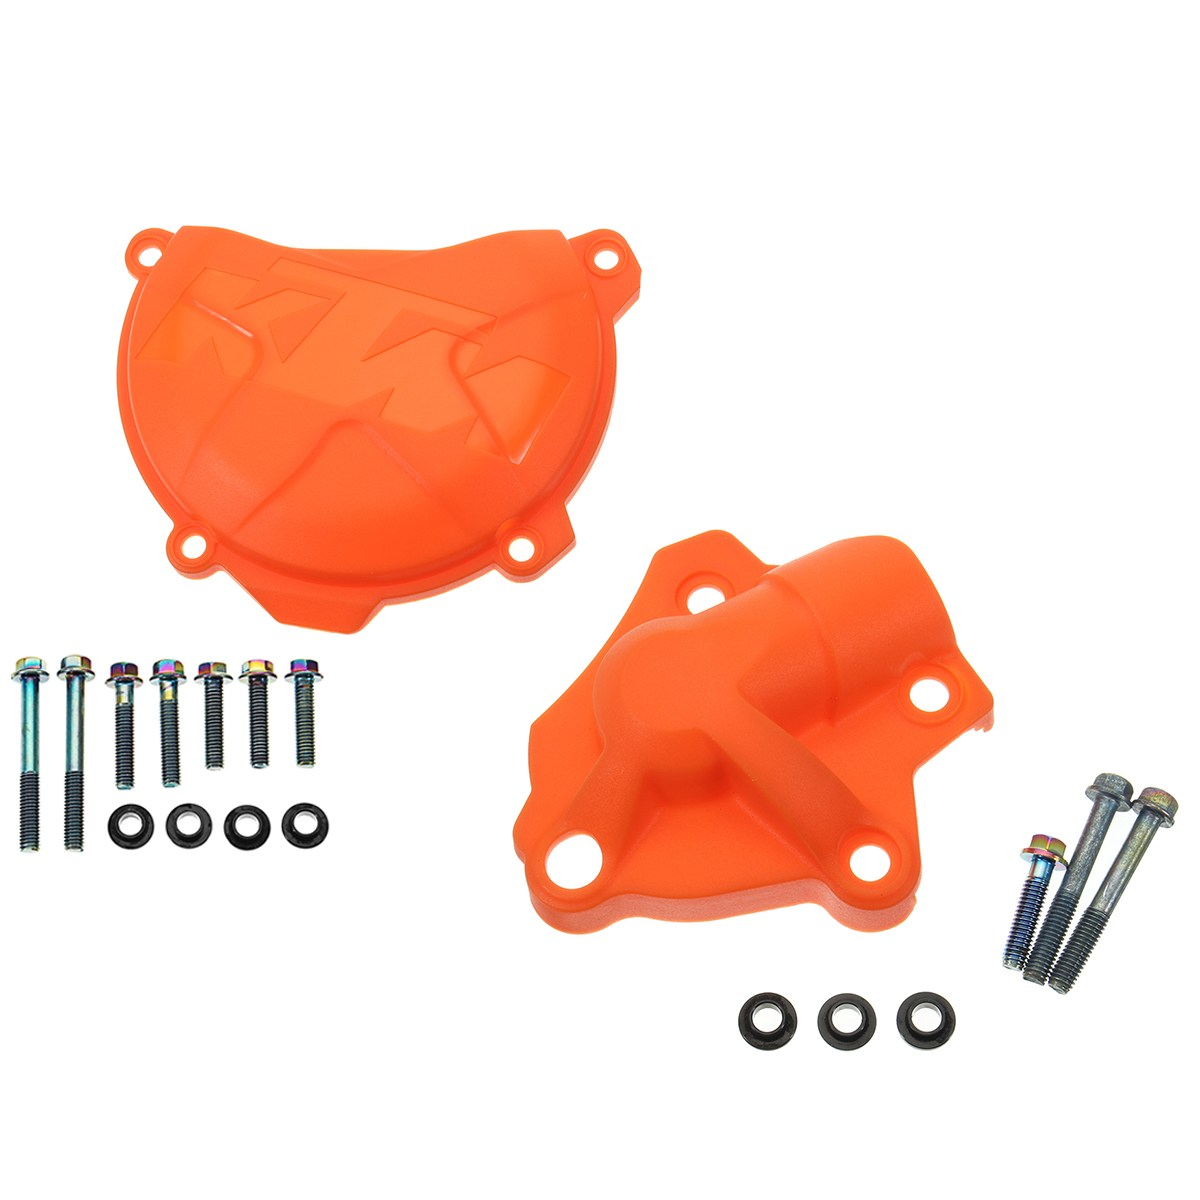 Motorcycle Clutch Cover Water Pump Cover Protector For KTM 250SX-F 2012-2015/350SX-F 2013-2014 250XC-F/250XCF-W 2014-2015 new cnc billet clutch cover outside for ktm 250 xcf w 2008 2009 2010 2011 2012 2013